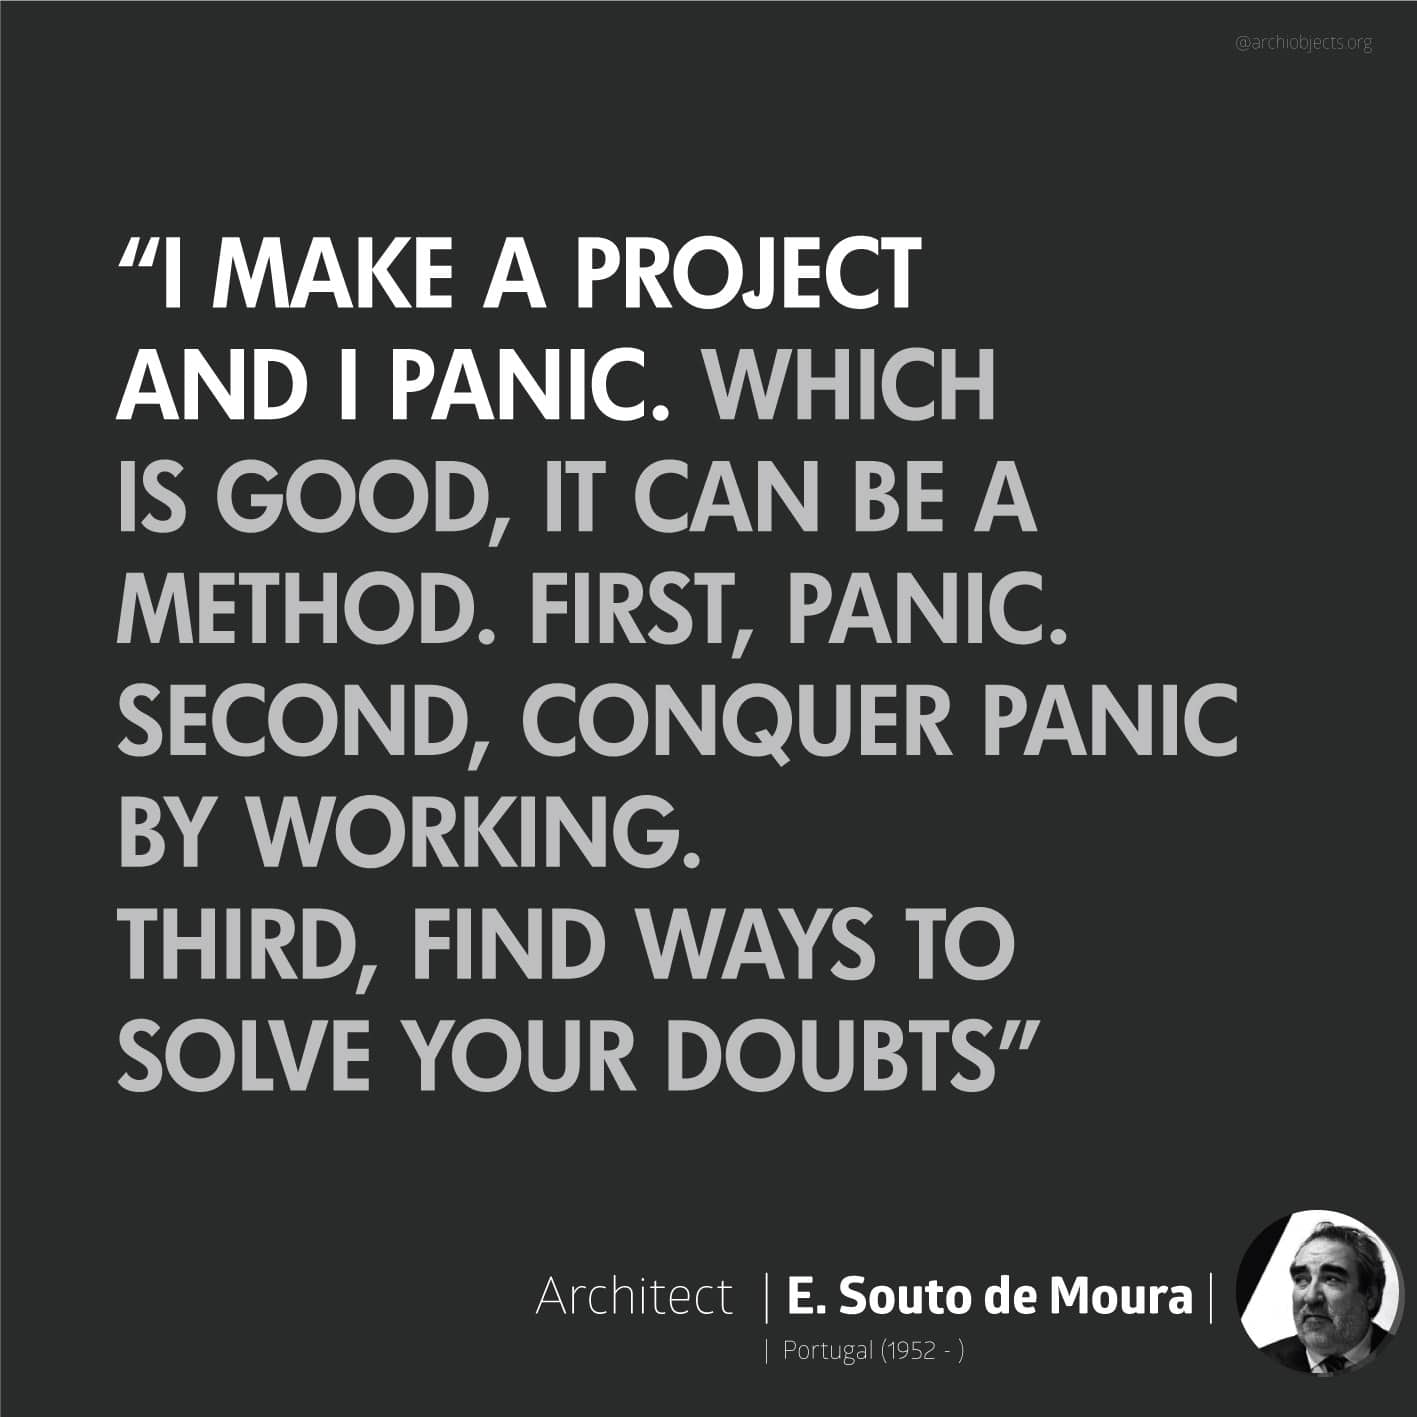 souto de moura quote Architectural Quotes - Worth spreading Architects' voice